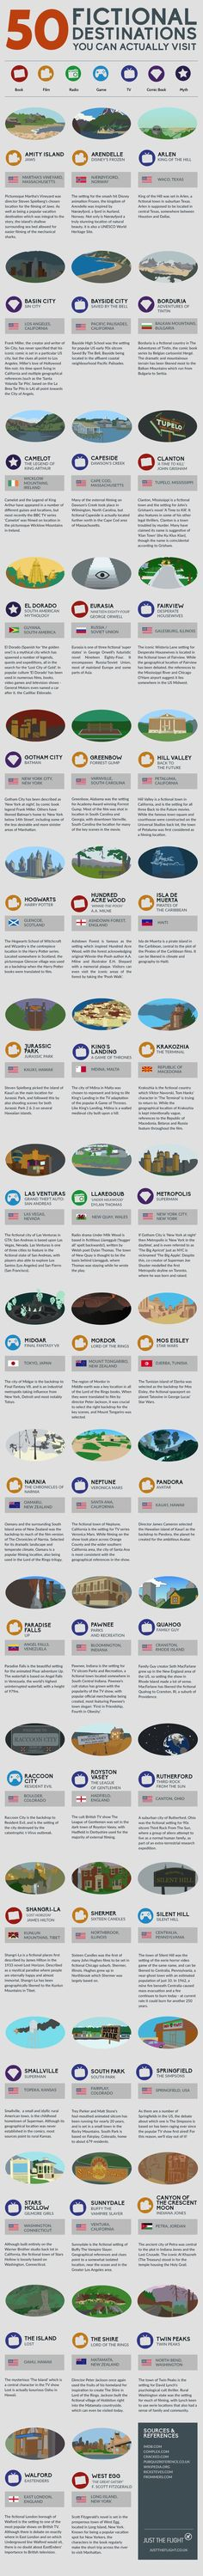 50 Fictional Destinations You Can Actually Visit #infographic #Travel #FictionalDestinations